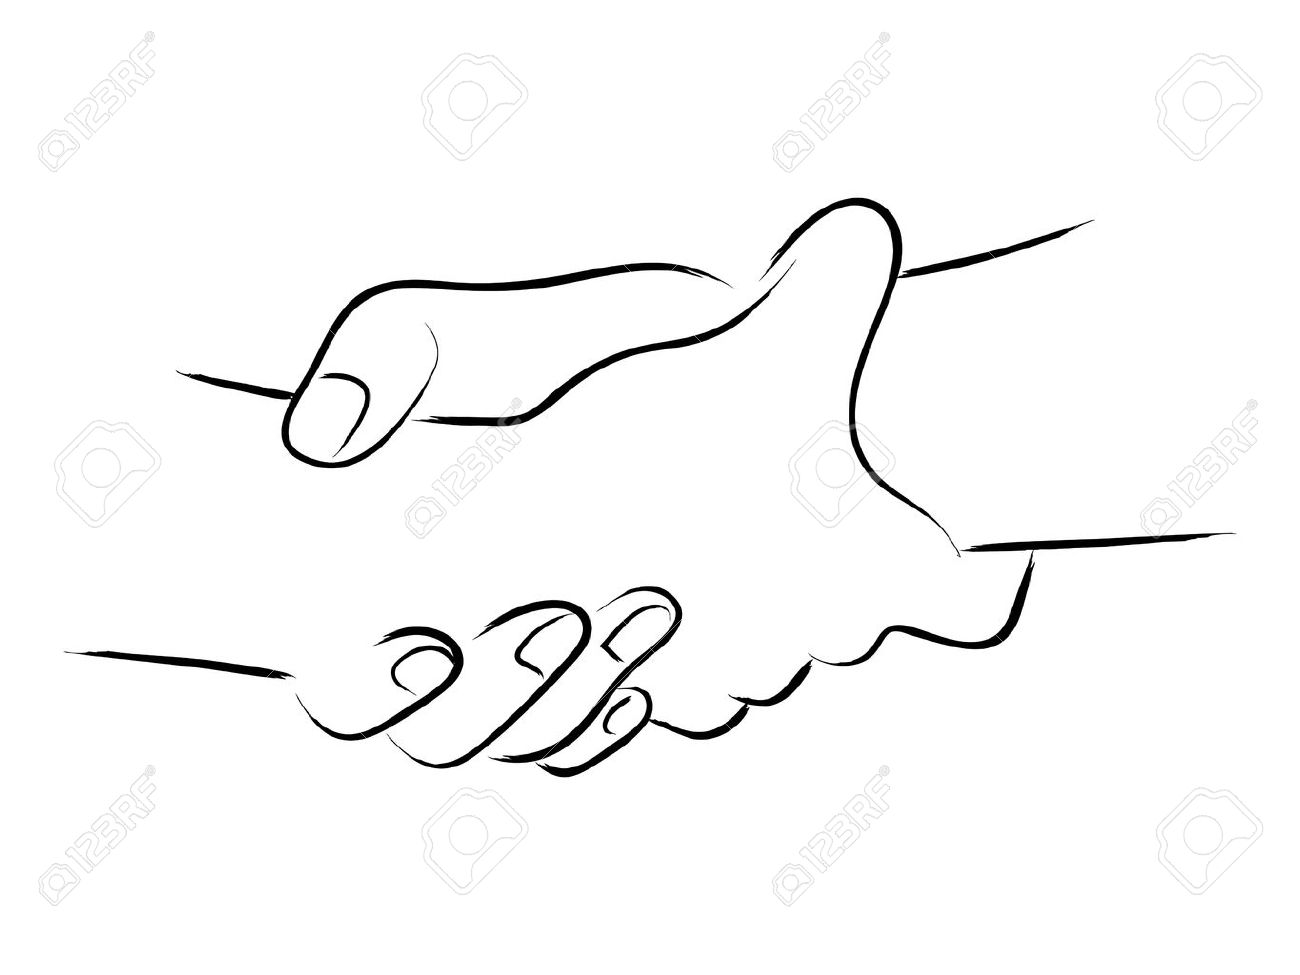 1300x975 Simple Line Art Of Two Hands Holding Each Other Strongly Royalty